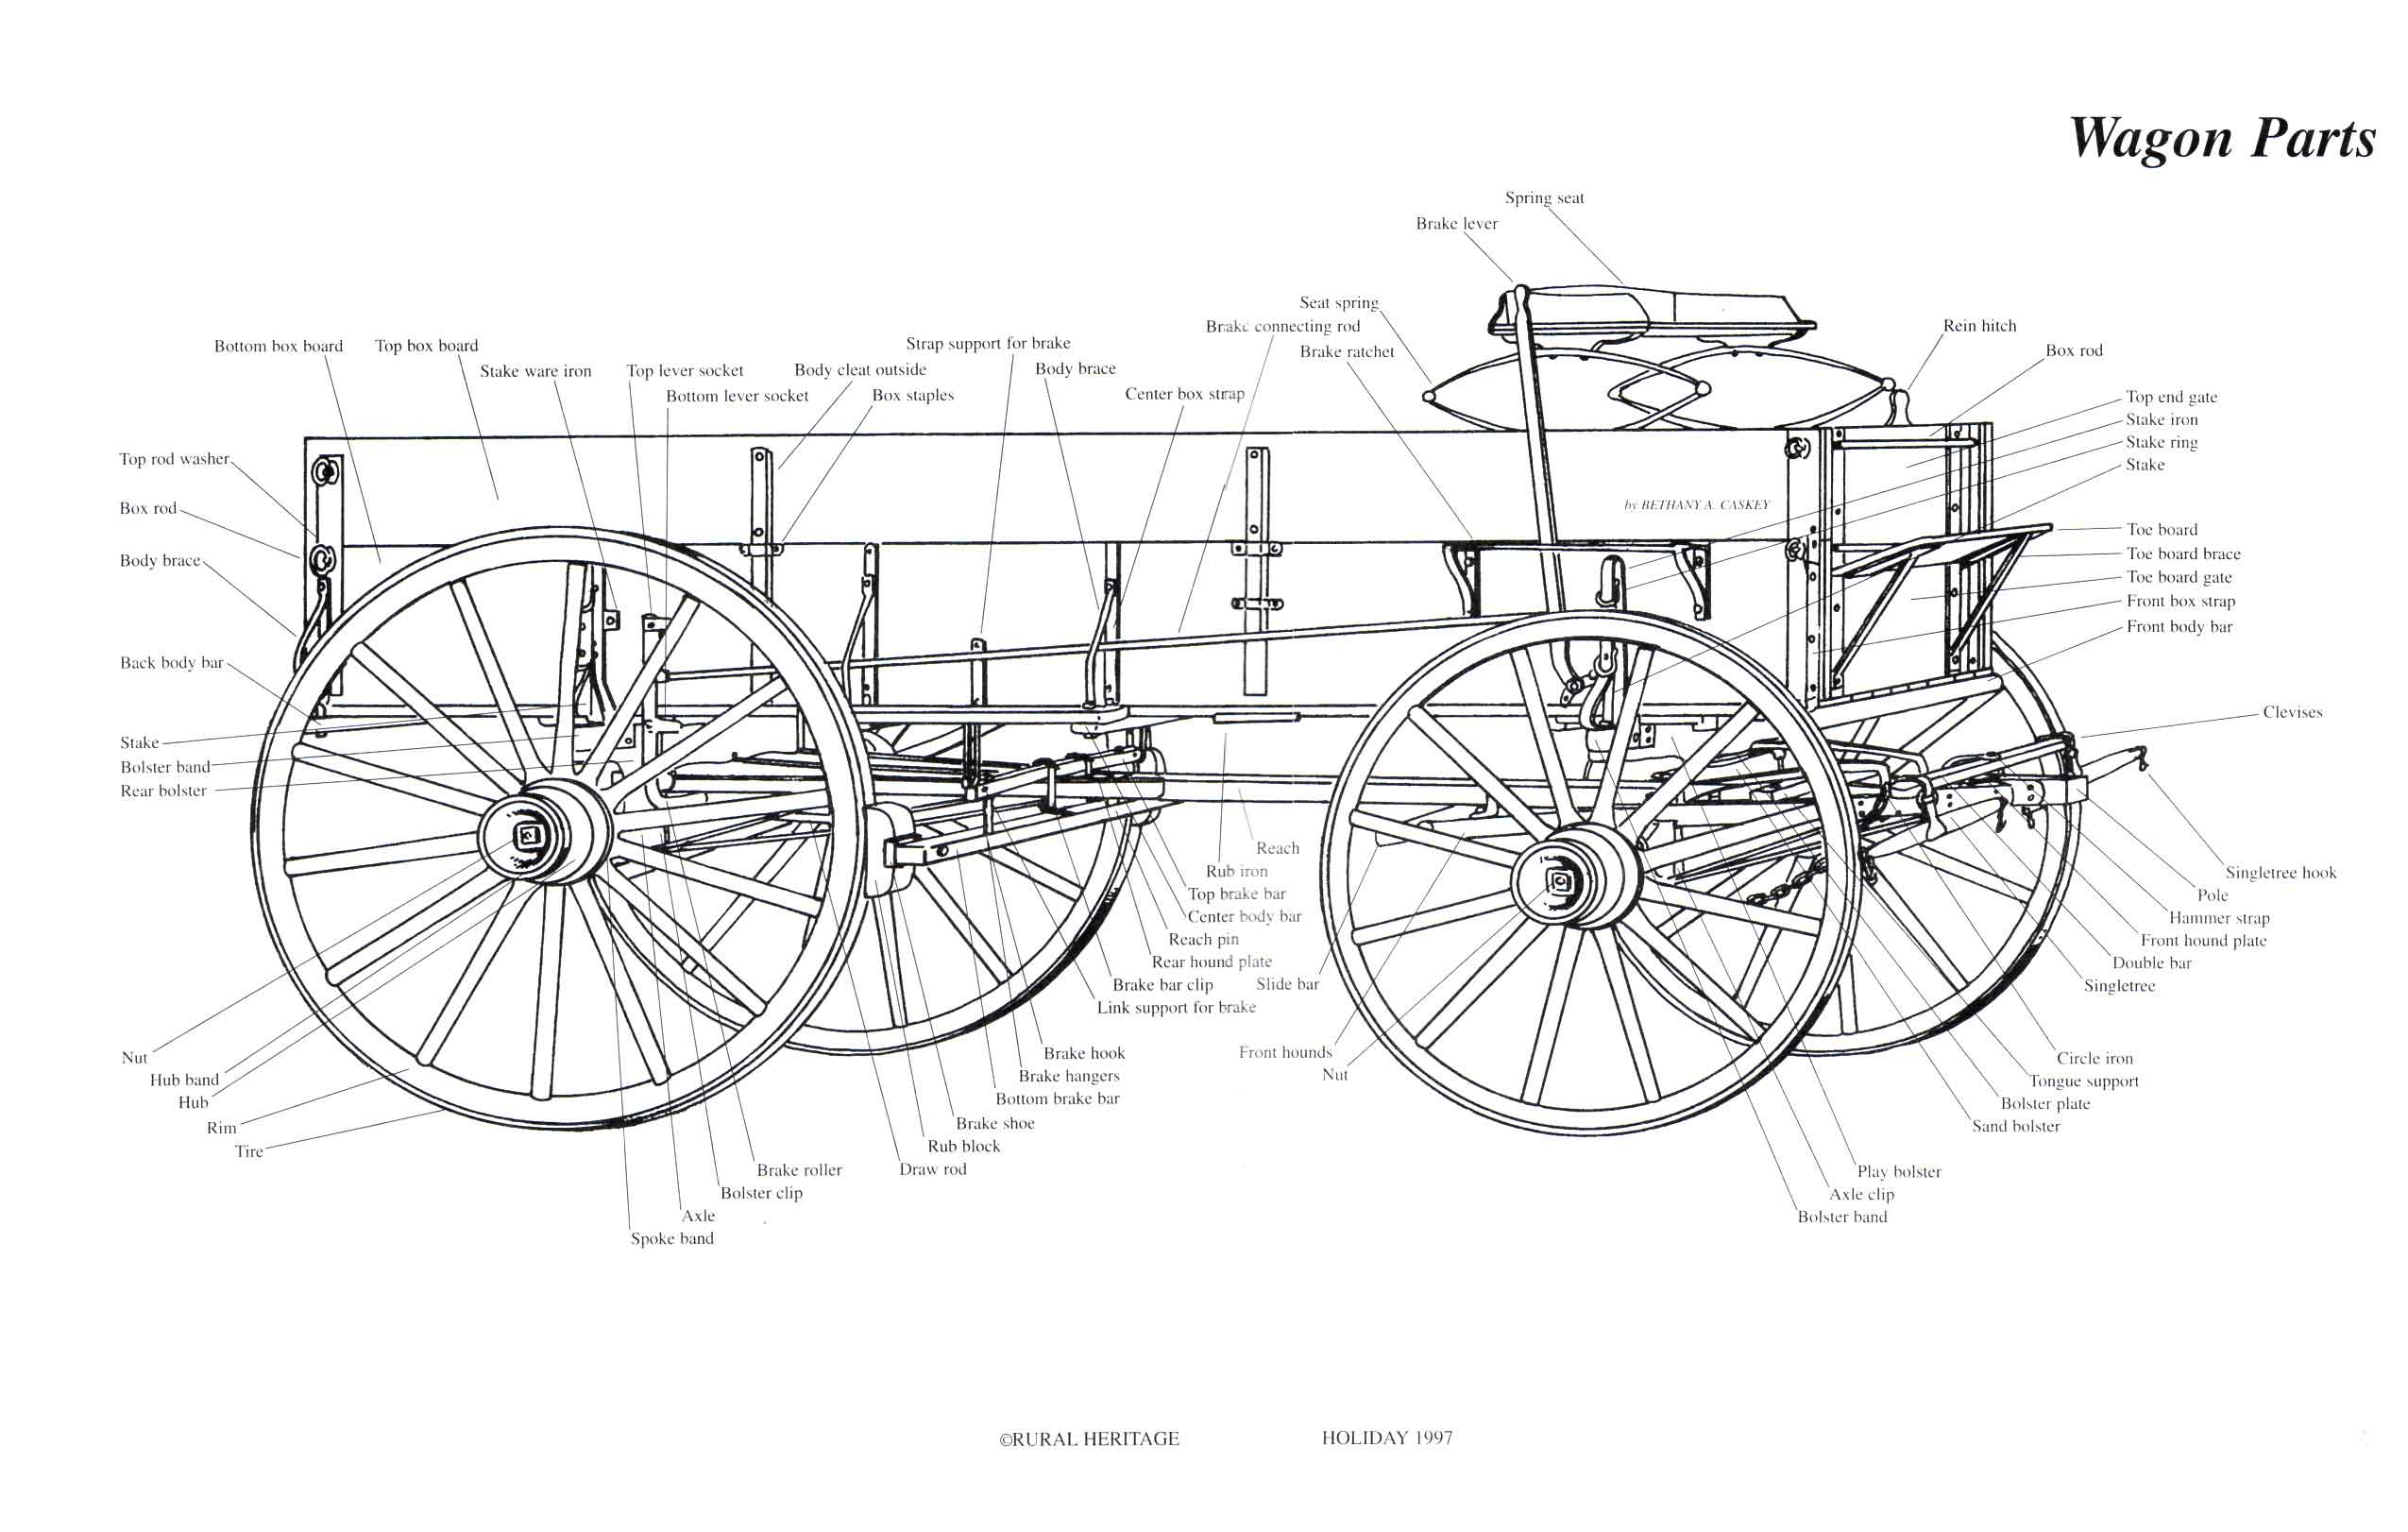 Horse Wagon Part Diagram dgBycjdT2OsTAeUWTHcuaMGuLza3zbdJuHUQ0o6eiuo on table fan motor wiring diagram